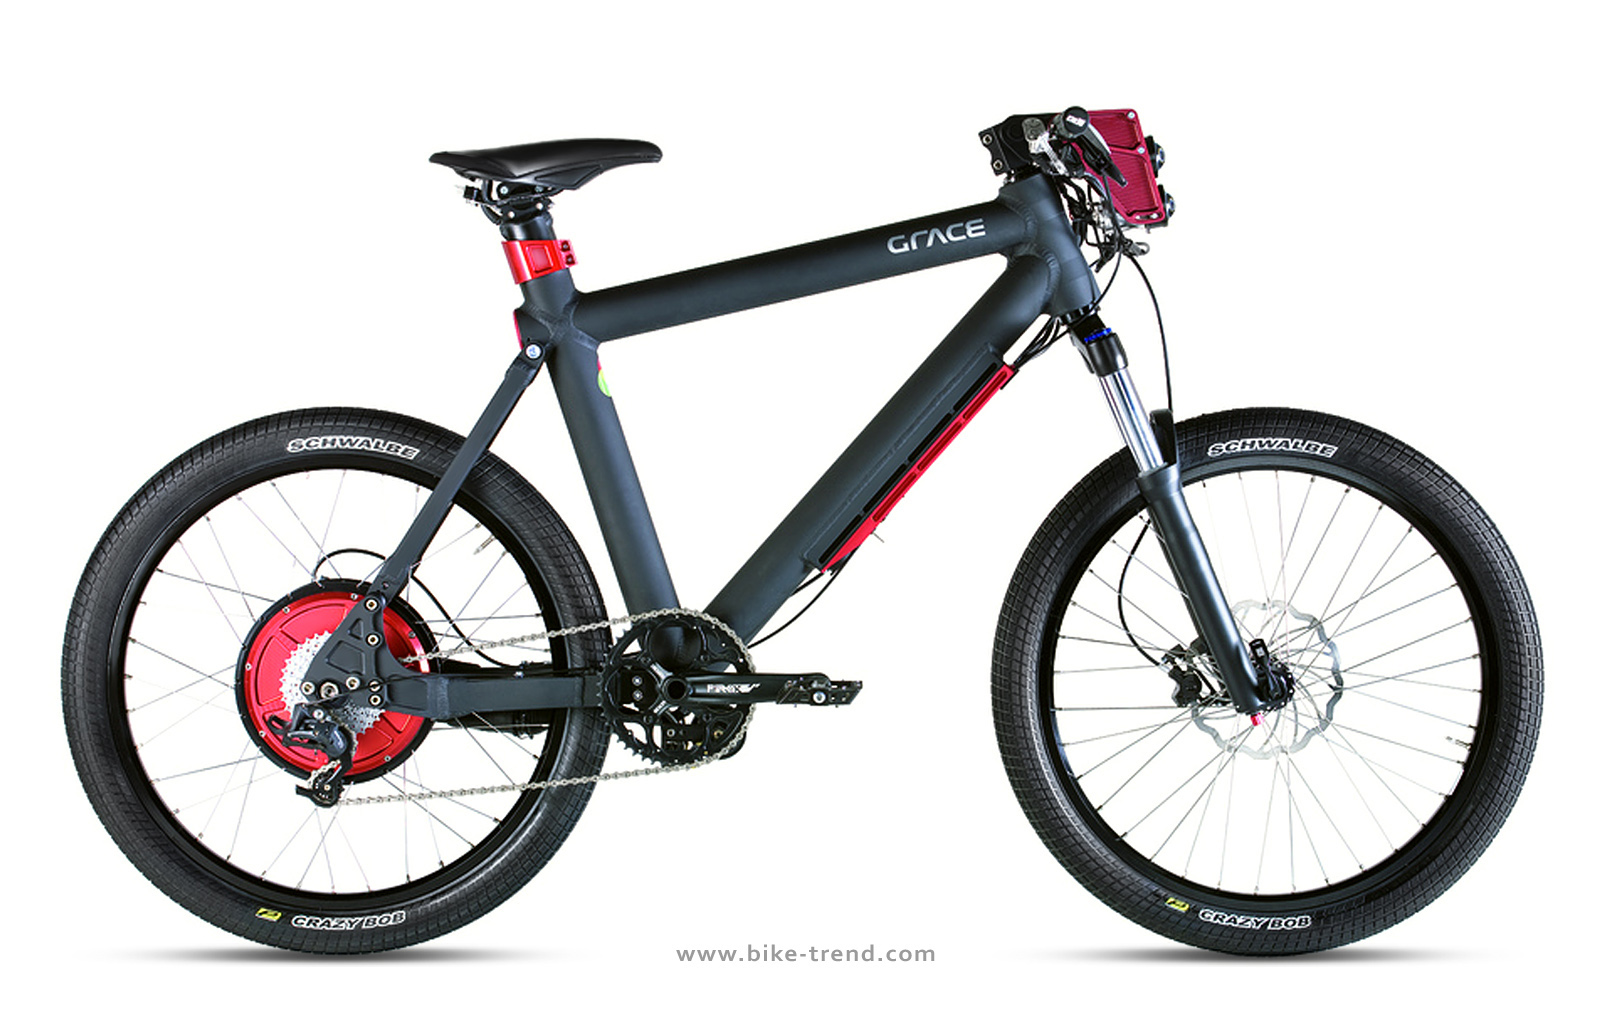 grace electrical bikes bike trend